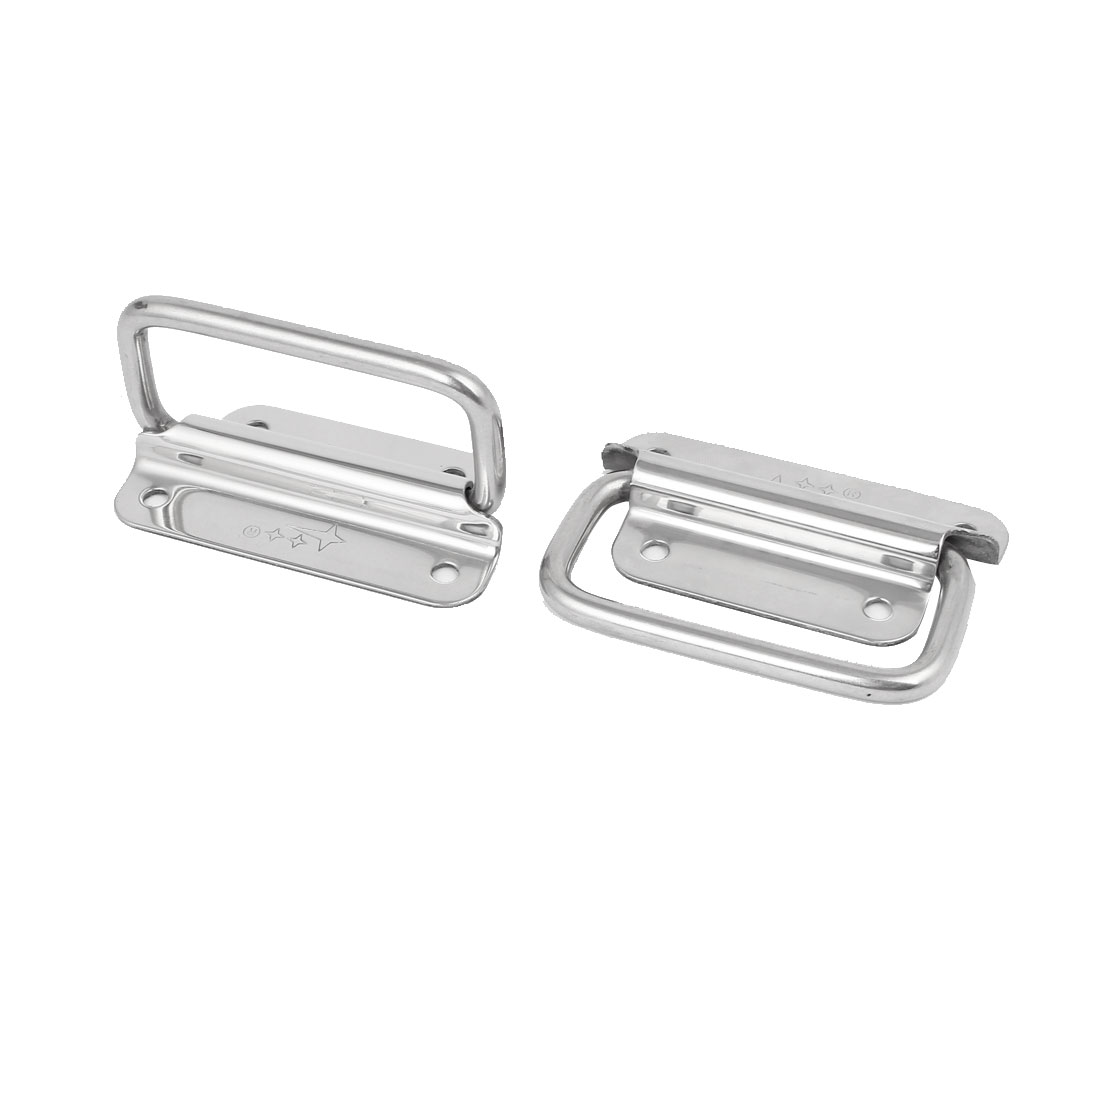 Toolbox Stainless Steel Chest Handle Grip Puller Silver Tone 75mmx65mmx12mm 2pcs